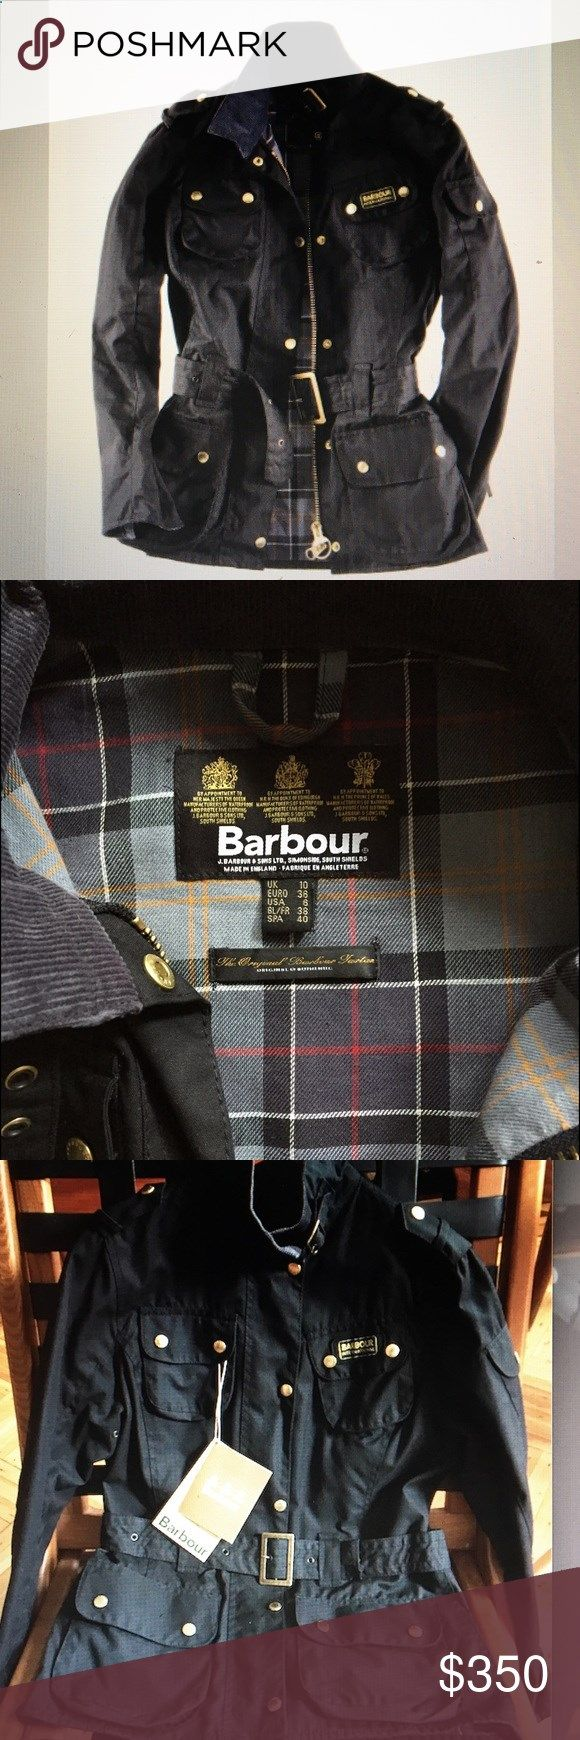 BARBOUR WOMENS INTERNATIONAL JACKET BARBOUR WOMENS INTERNATIONAL JACKET. Made in England. Size US 6. Never worn. Iconic Biker Style. Heavyweight 8oz. Barbour Sylkoil Wax Shell with Belt. 100% Cotton Tartan Lining. Sponge clean. 2way Zipper. All weather with Matte Finish. Barbour Jackets  Coats